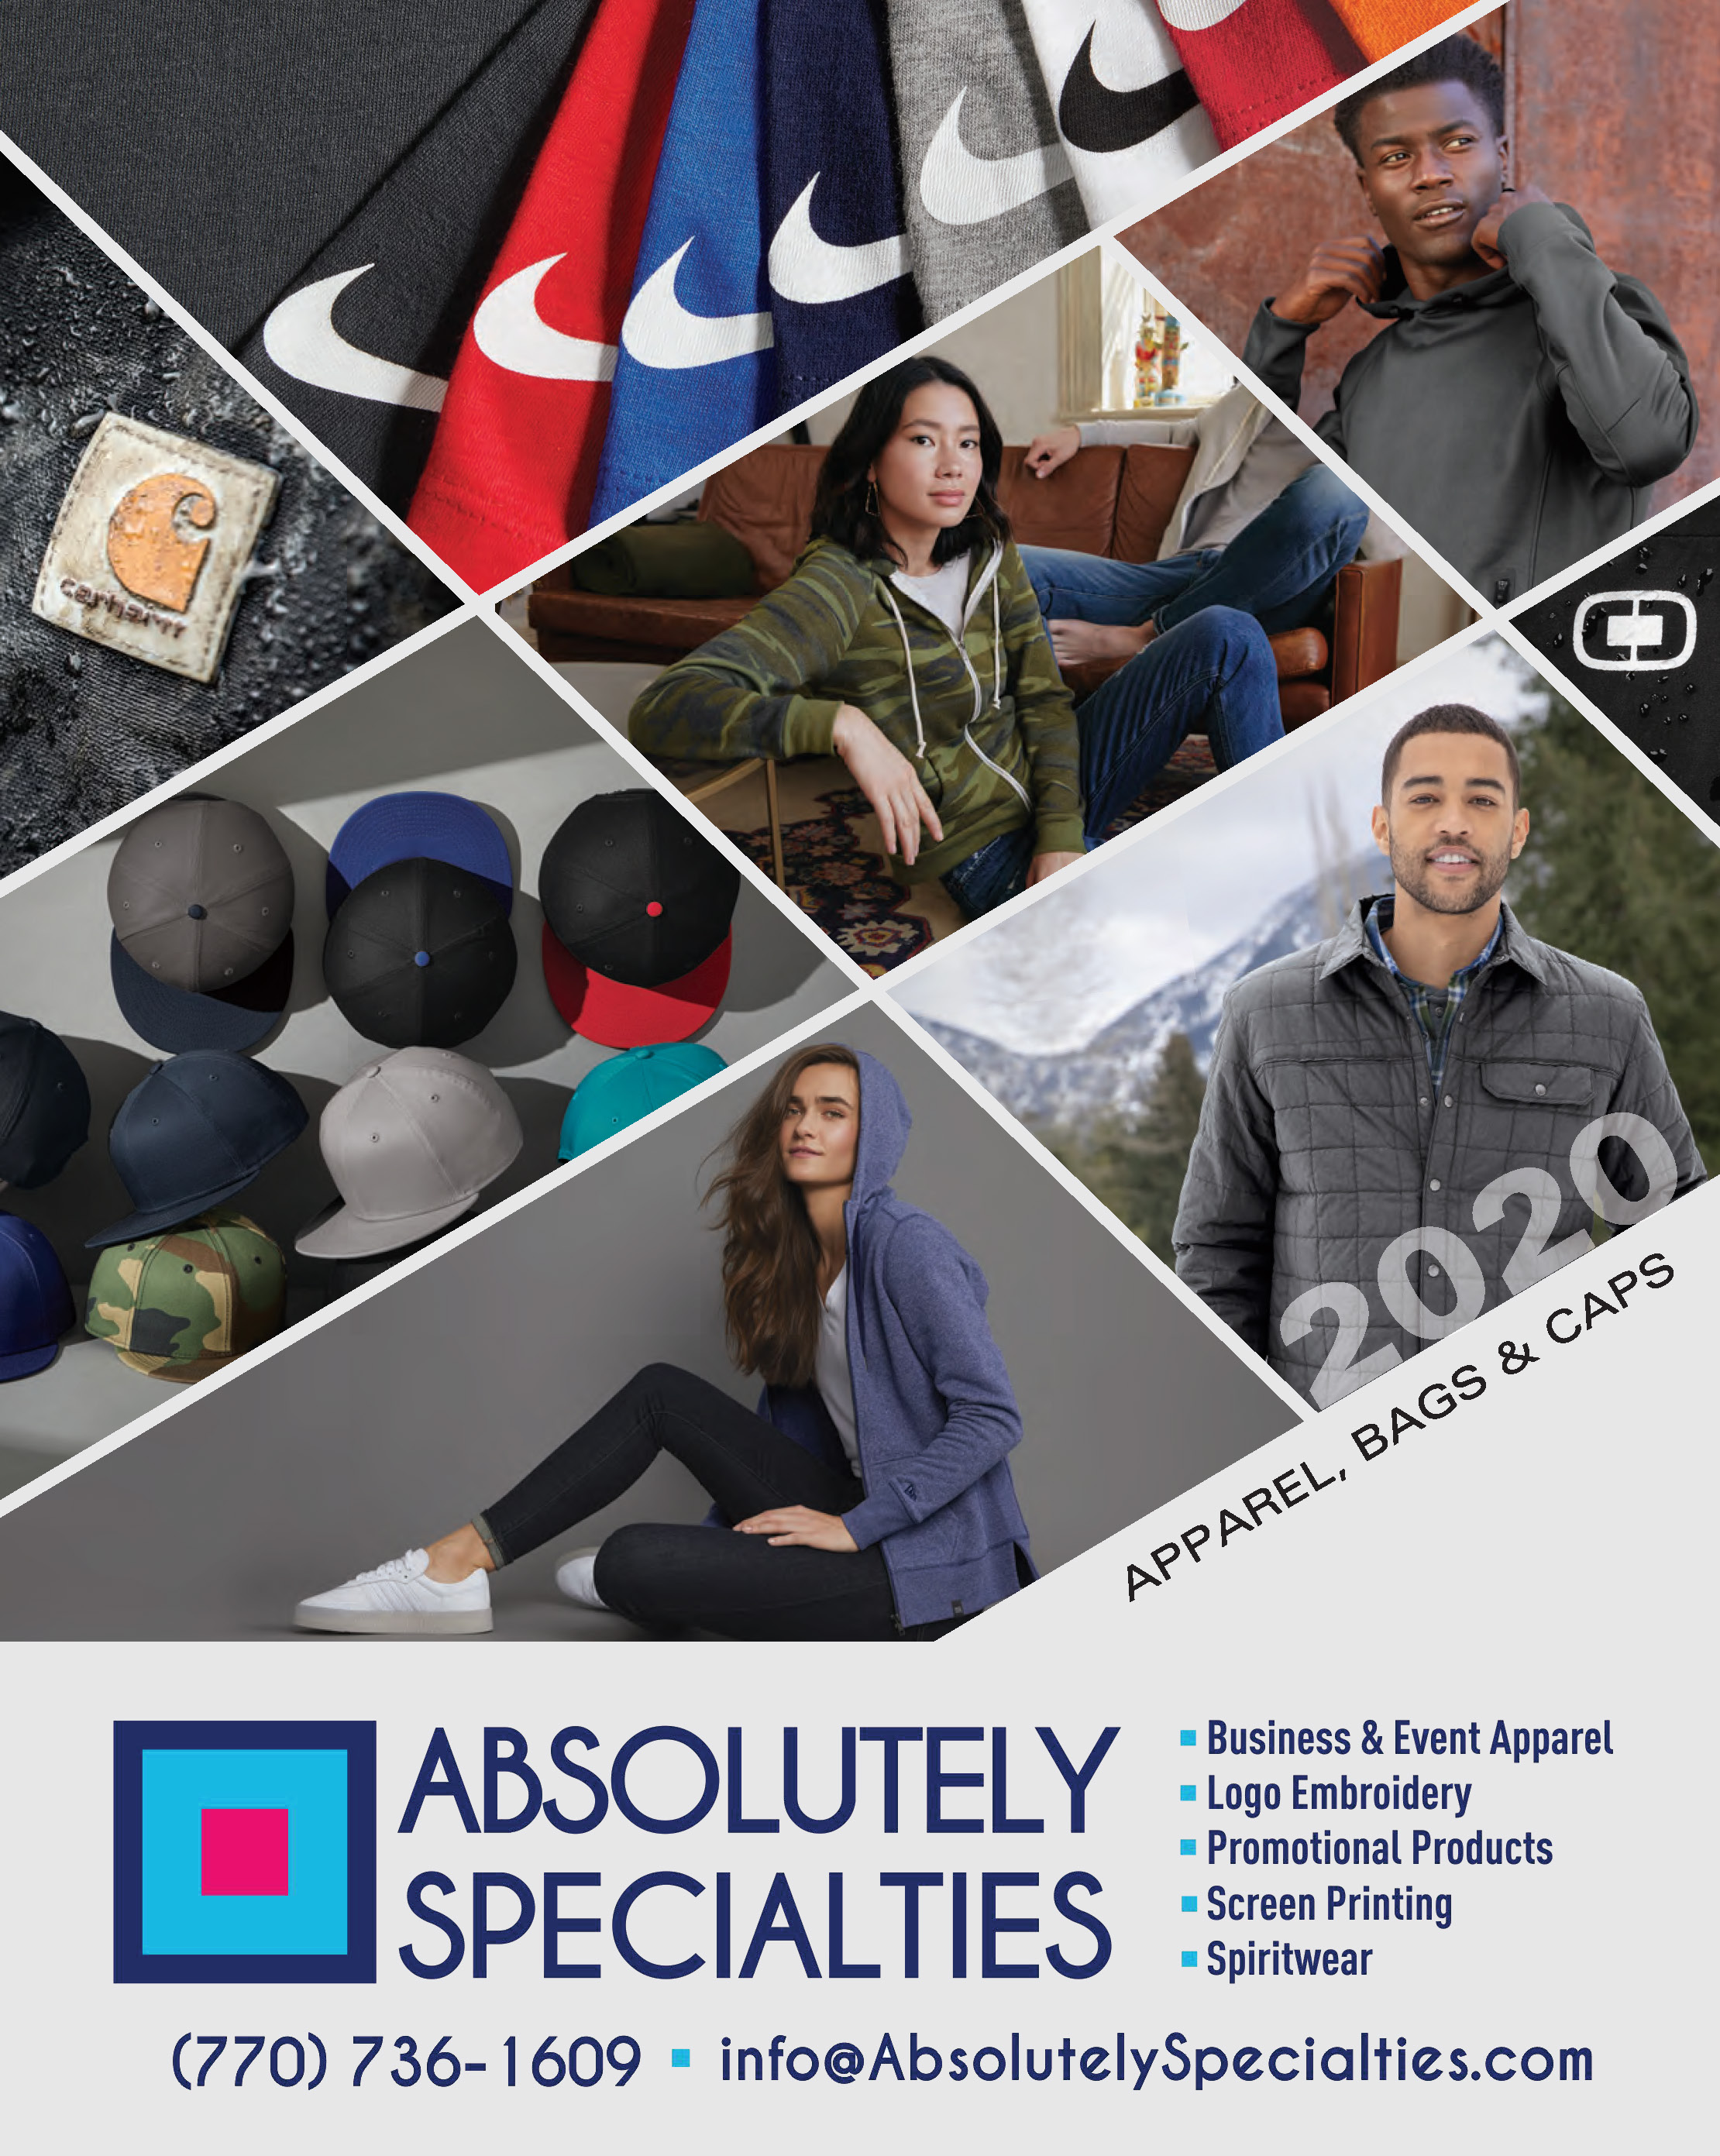 2020 Apparel Catalog - Nike, Ogio, & More